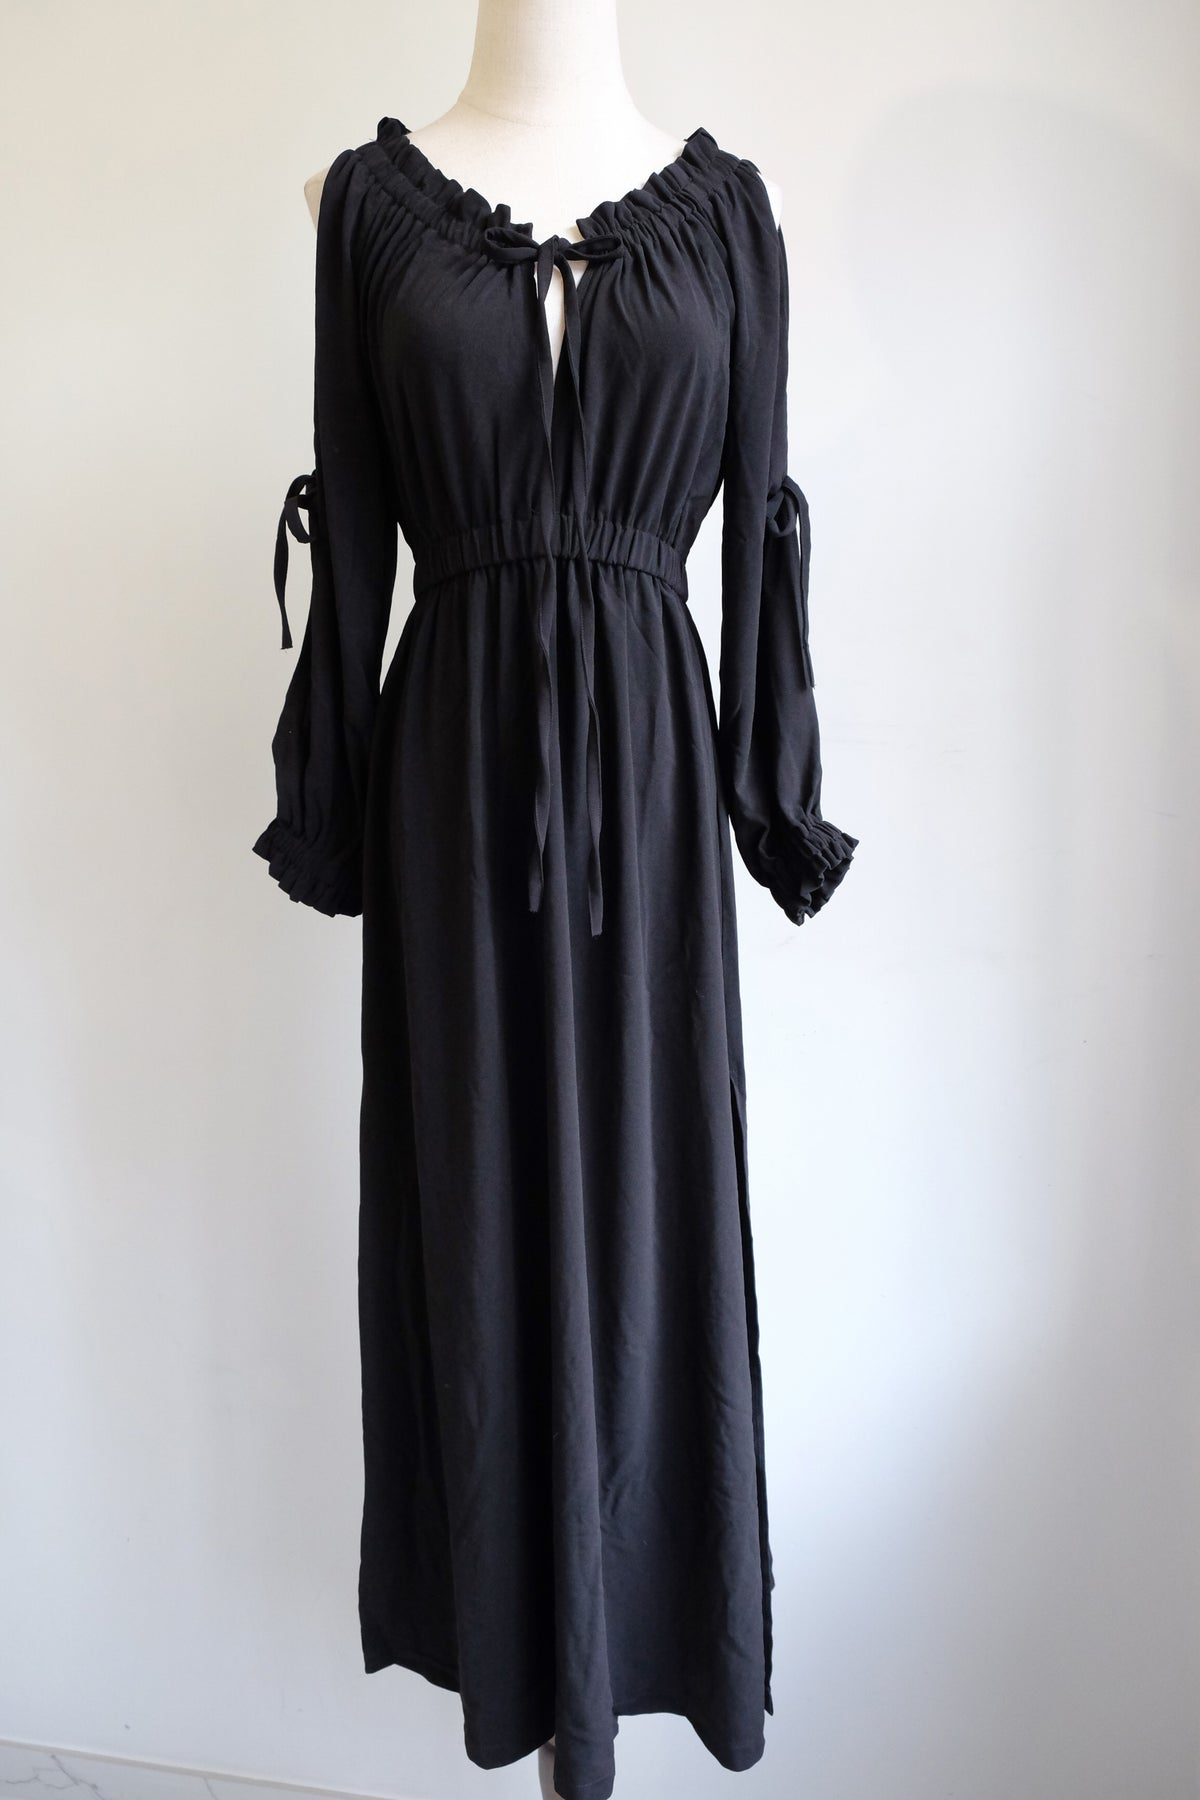 Image of SAMPLE SALE - Unreleased Montana Tied Up Off Shoulder Dress Black